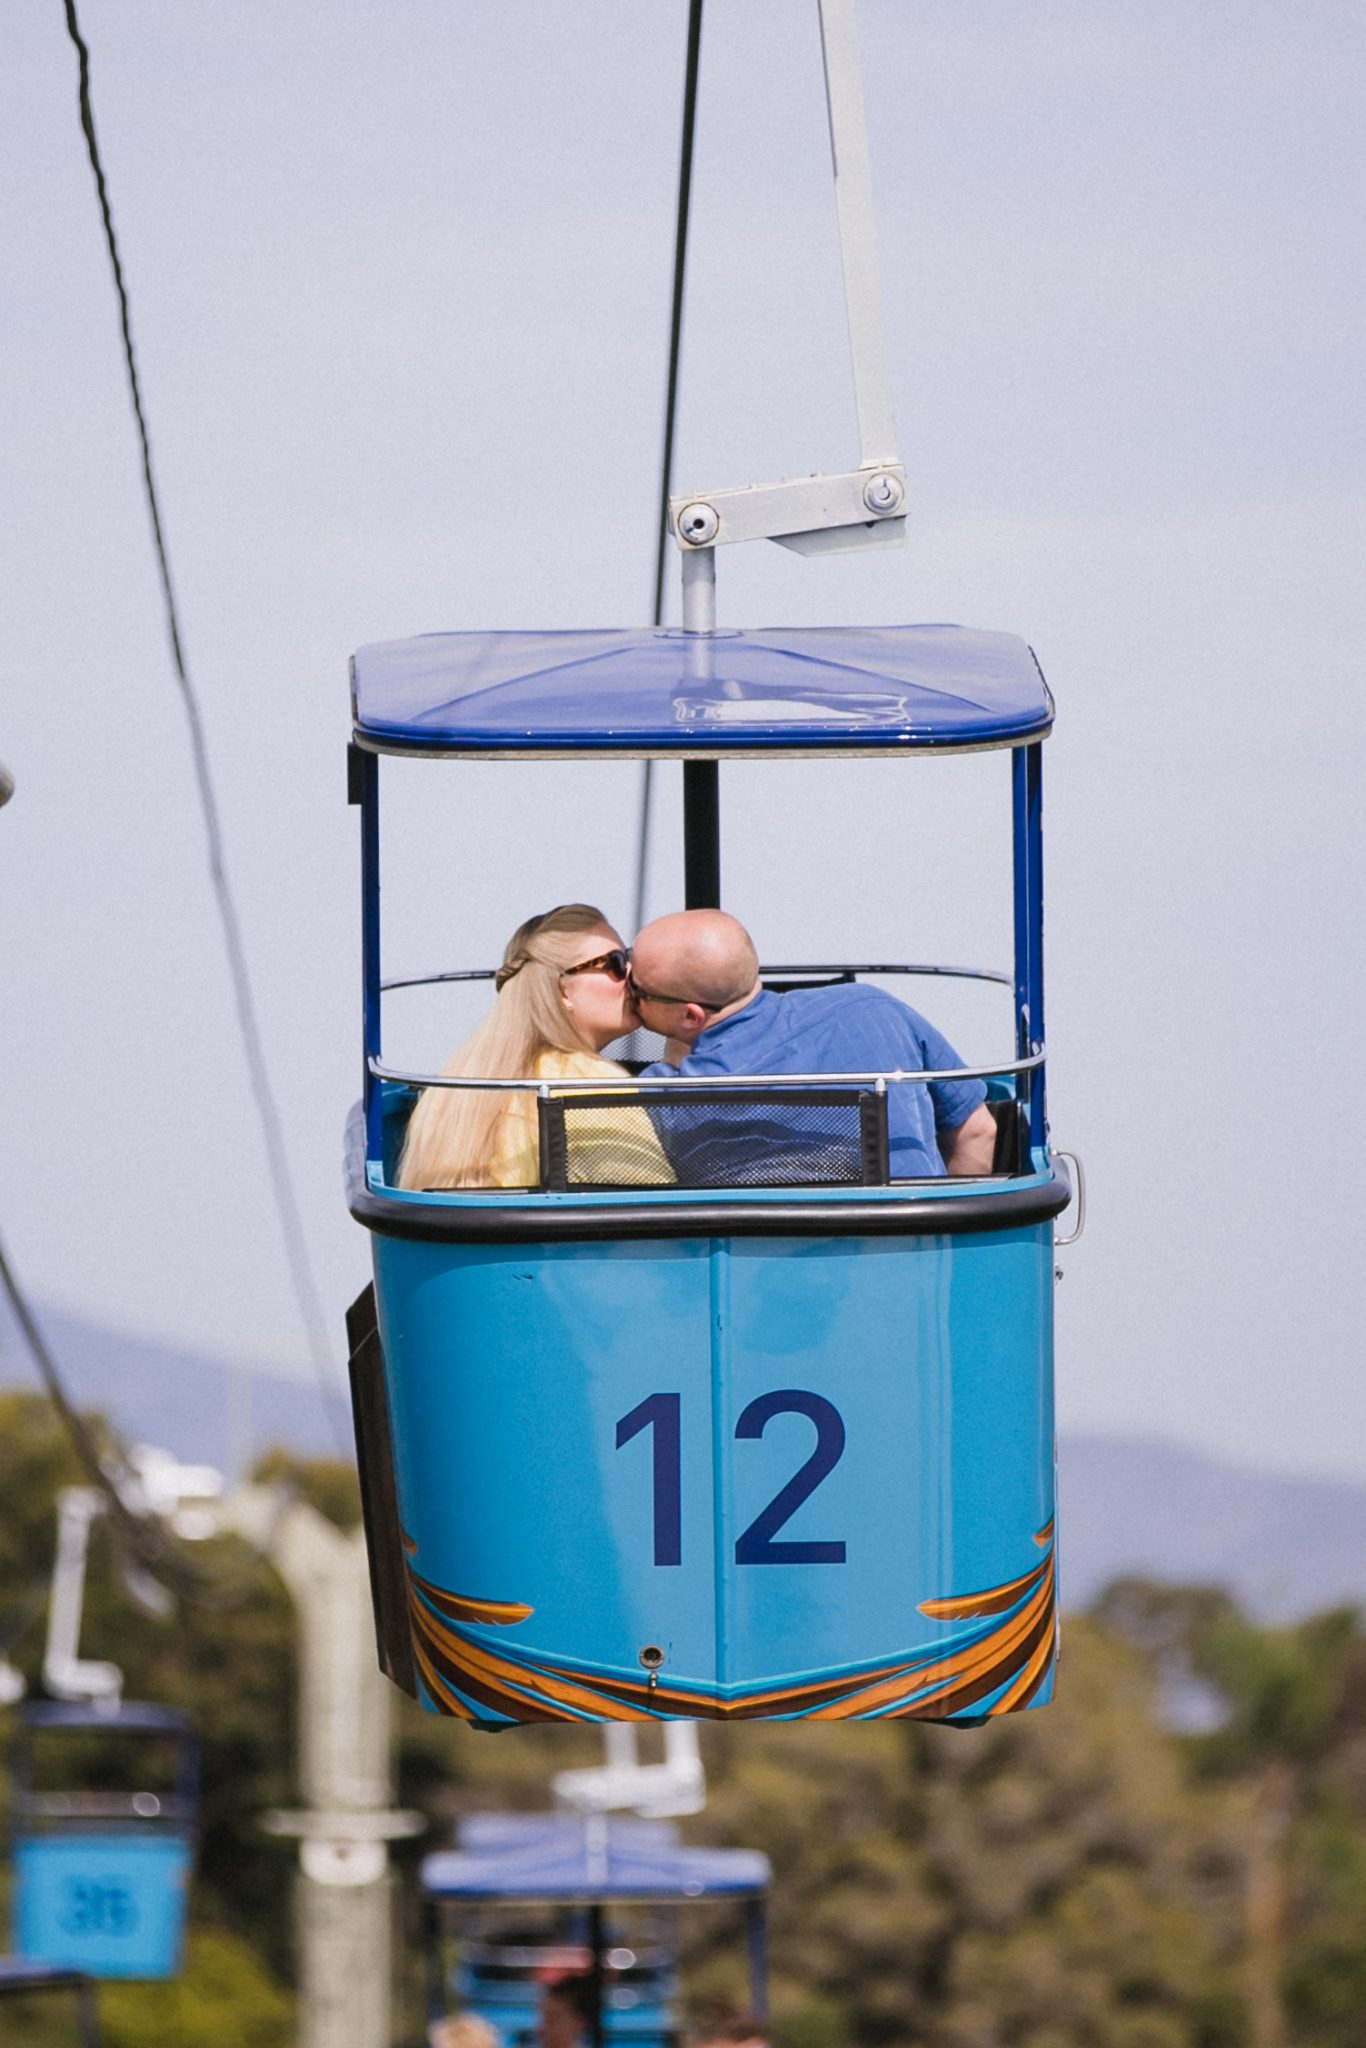 Man and woman kissing in gondola ride at the zoo